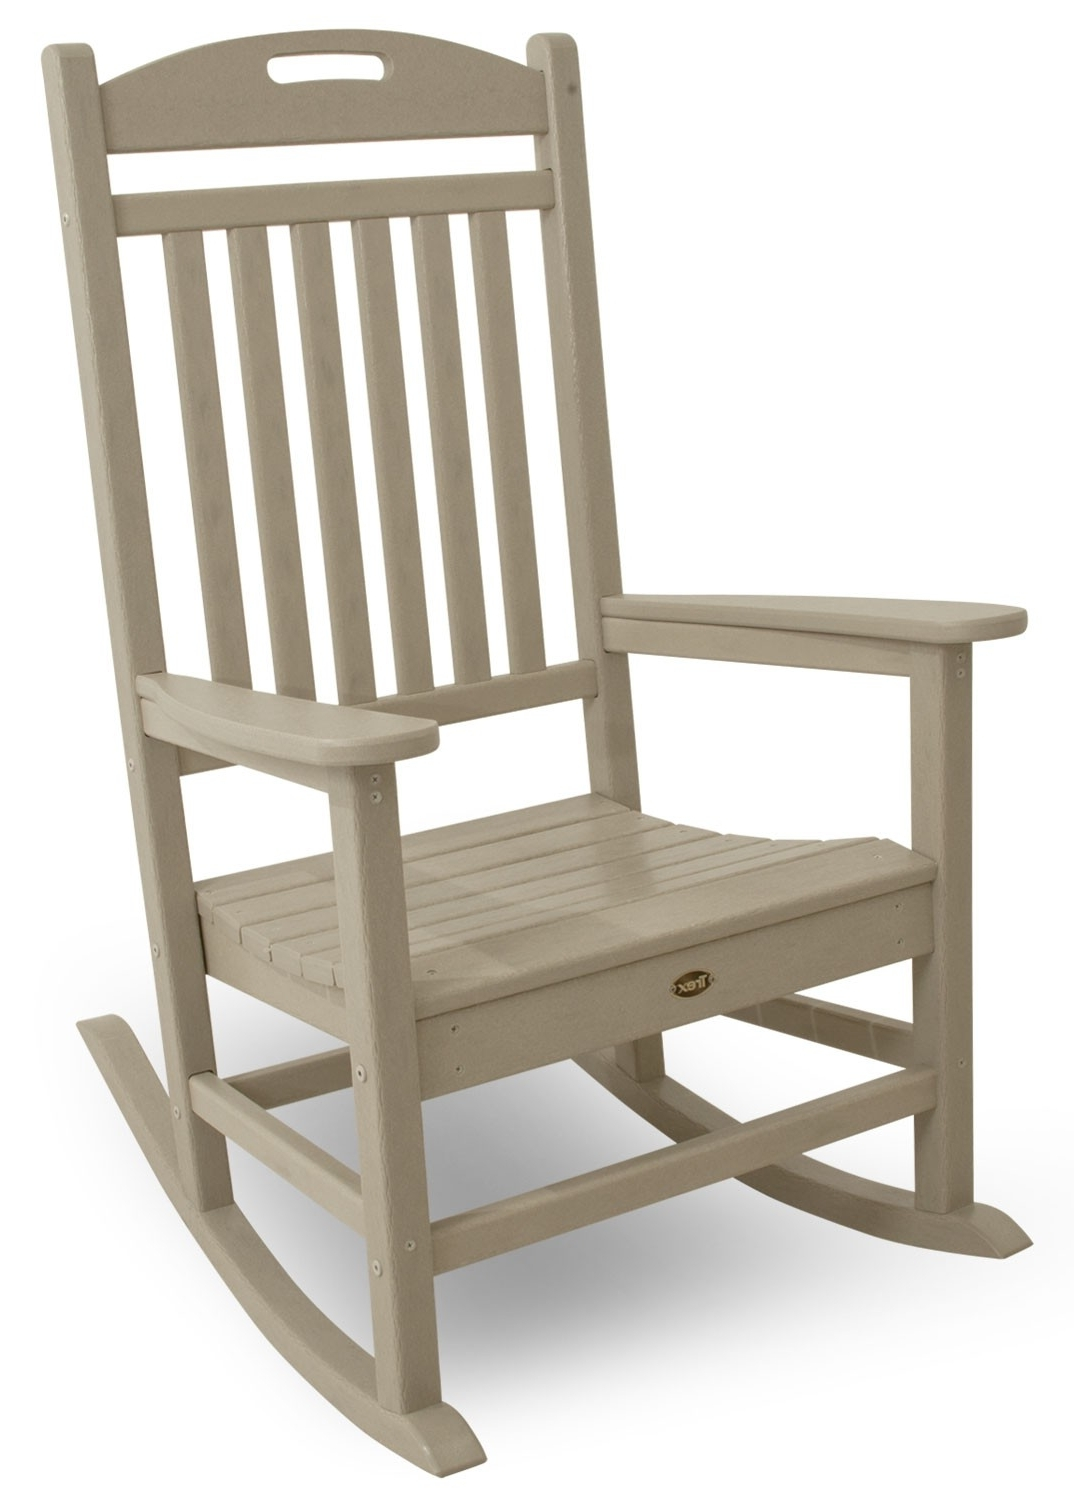 Most Recent Rocking Chair Outdoor Wooden Pertaining To Yacht Club Rocking Chair (View 12 of 20)